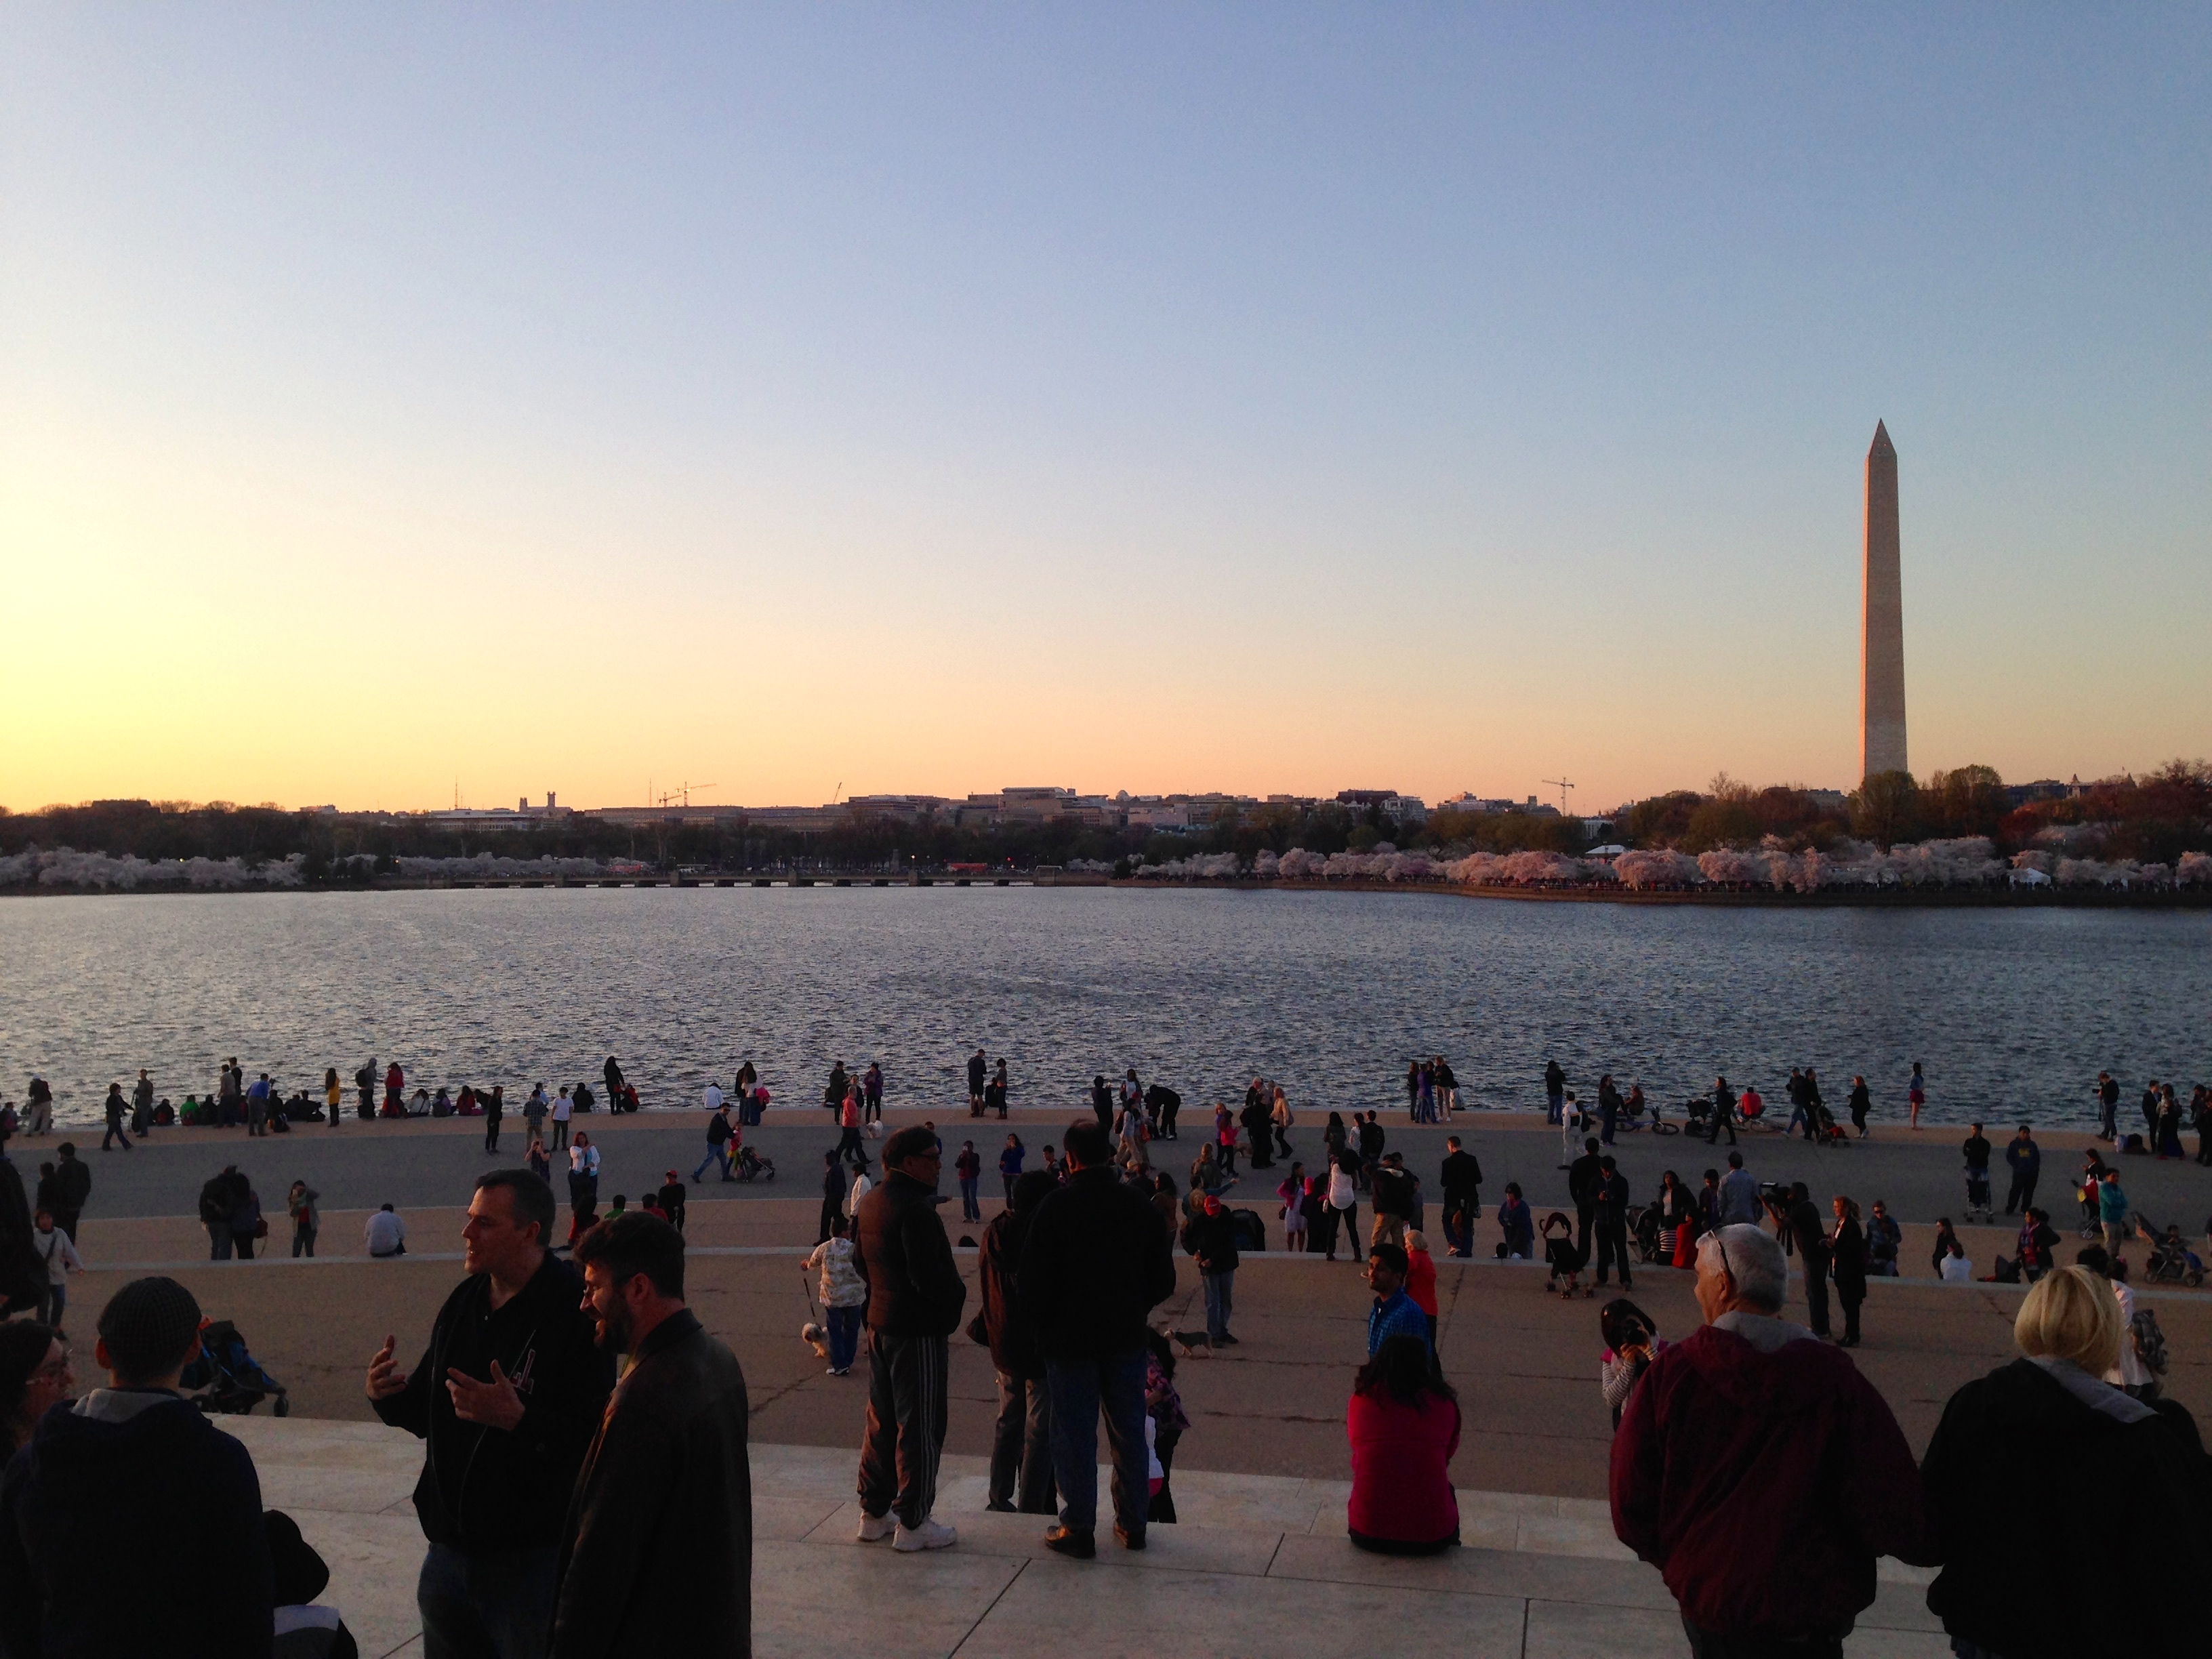 View of the Washington Monument from the tidal basin. PC: Naomi Folta